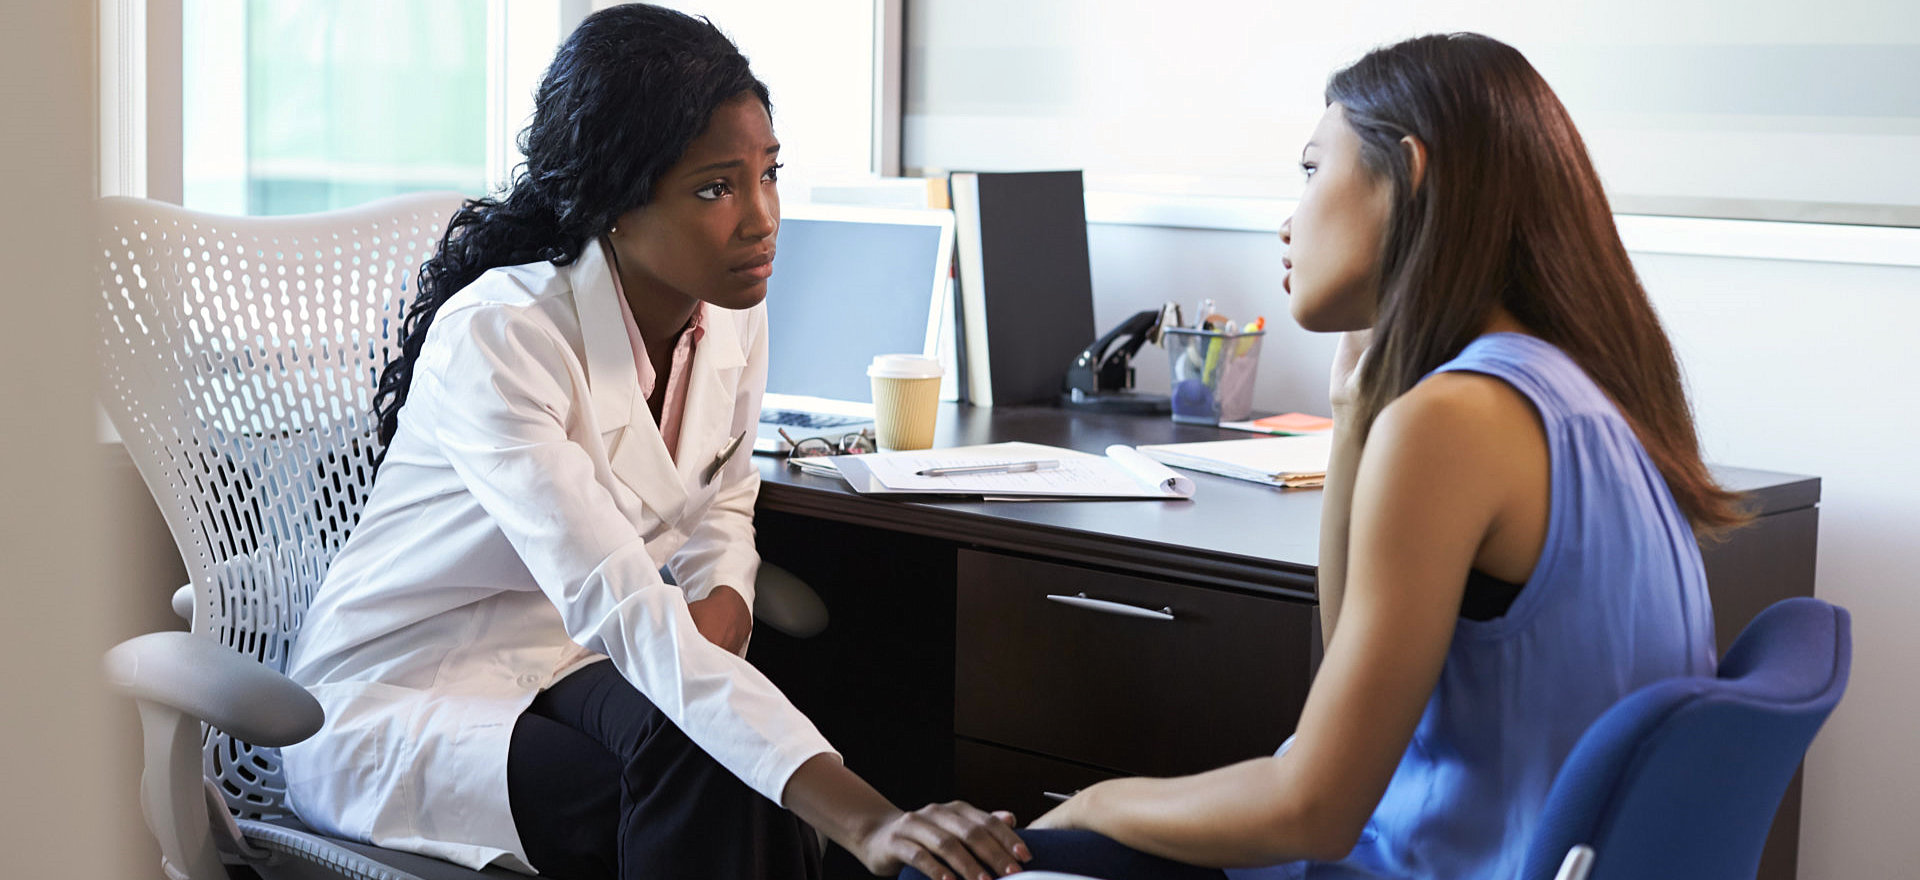 therapist comforting a woman